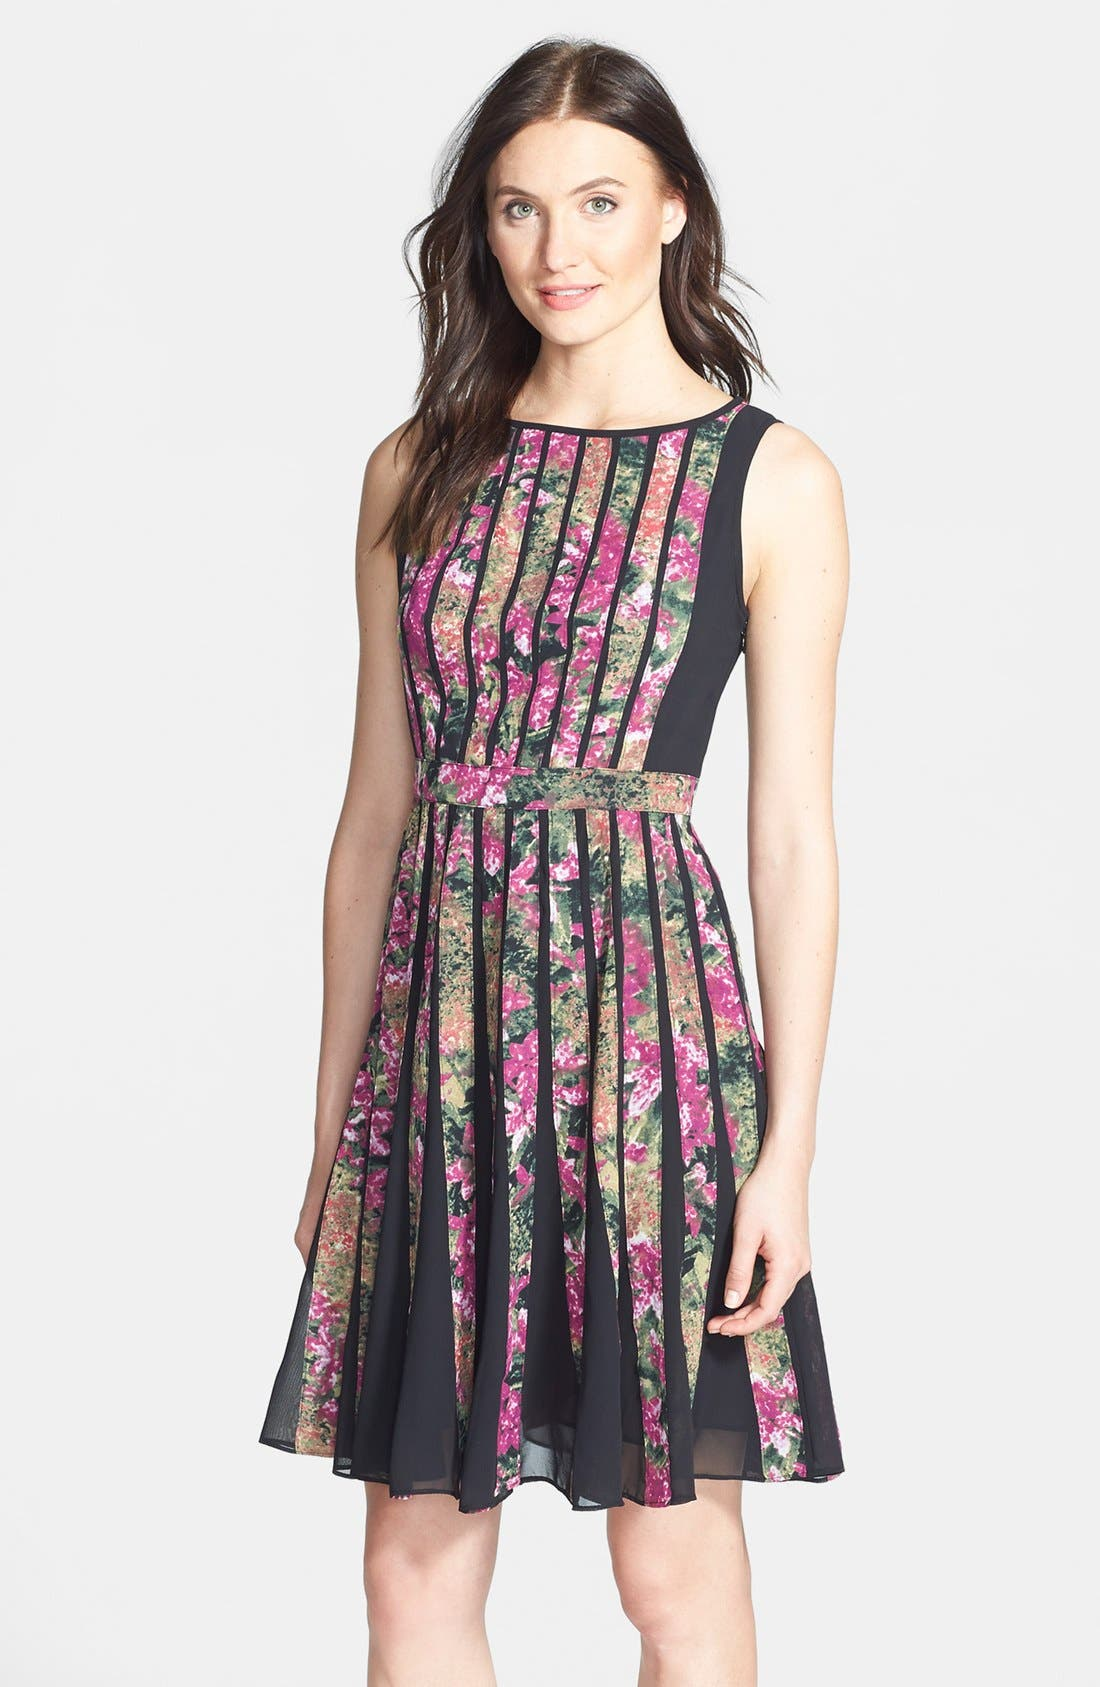 Alternate Image 1 Selected - Adrianna Papell Spliced Floral Print Fit & Flare Dress